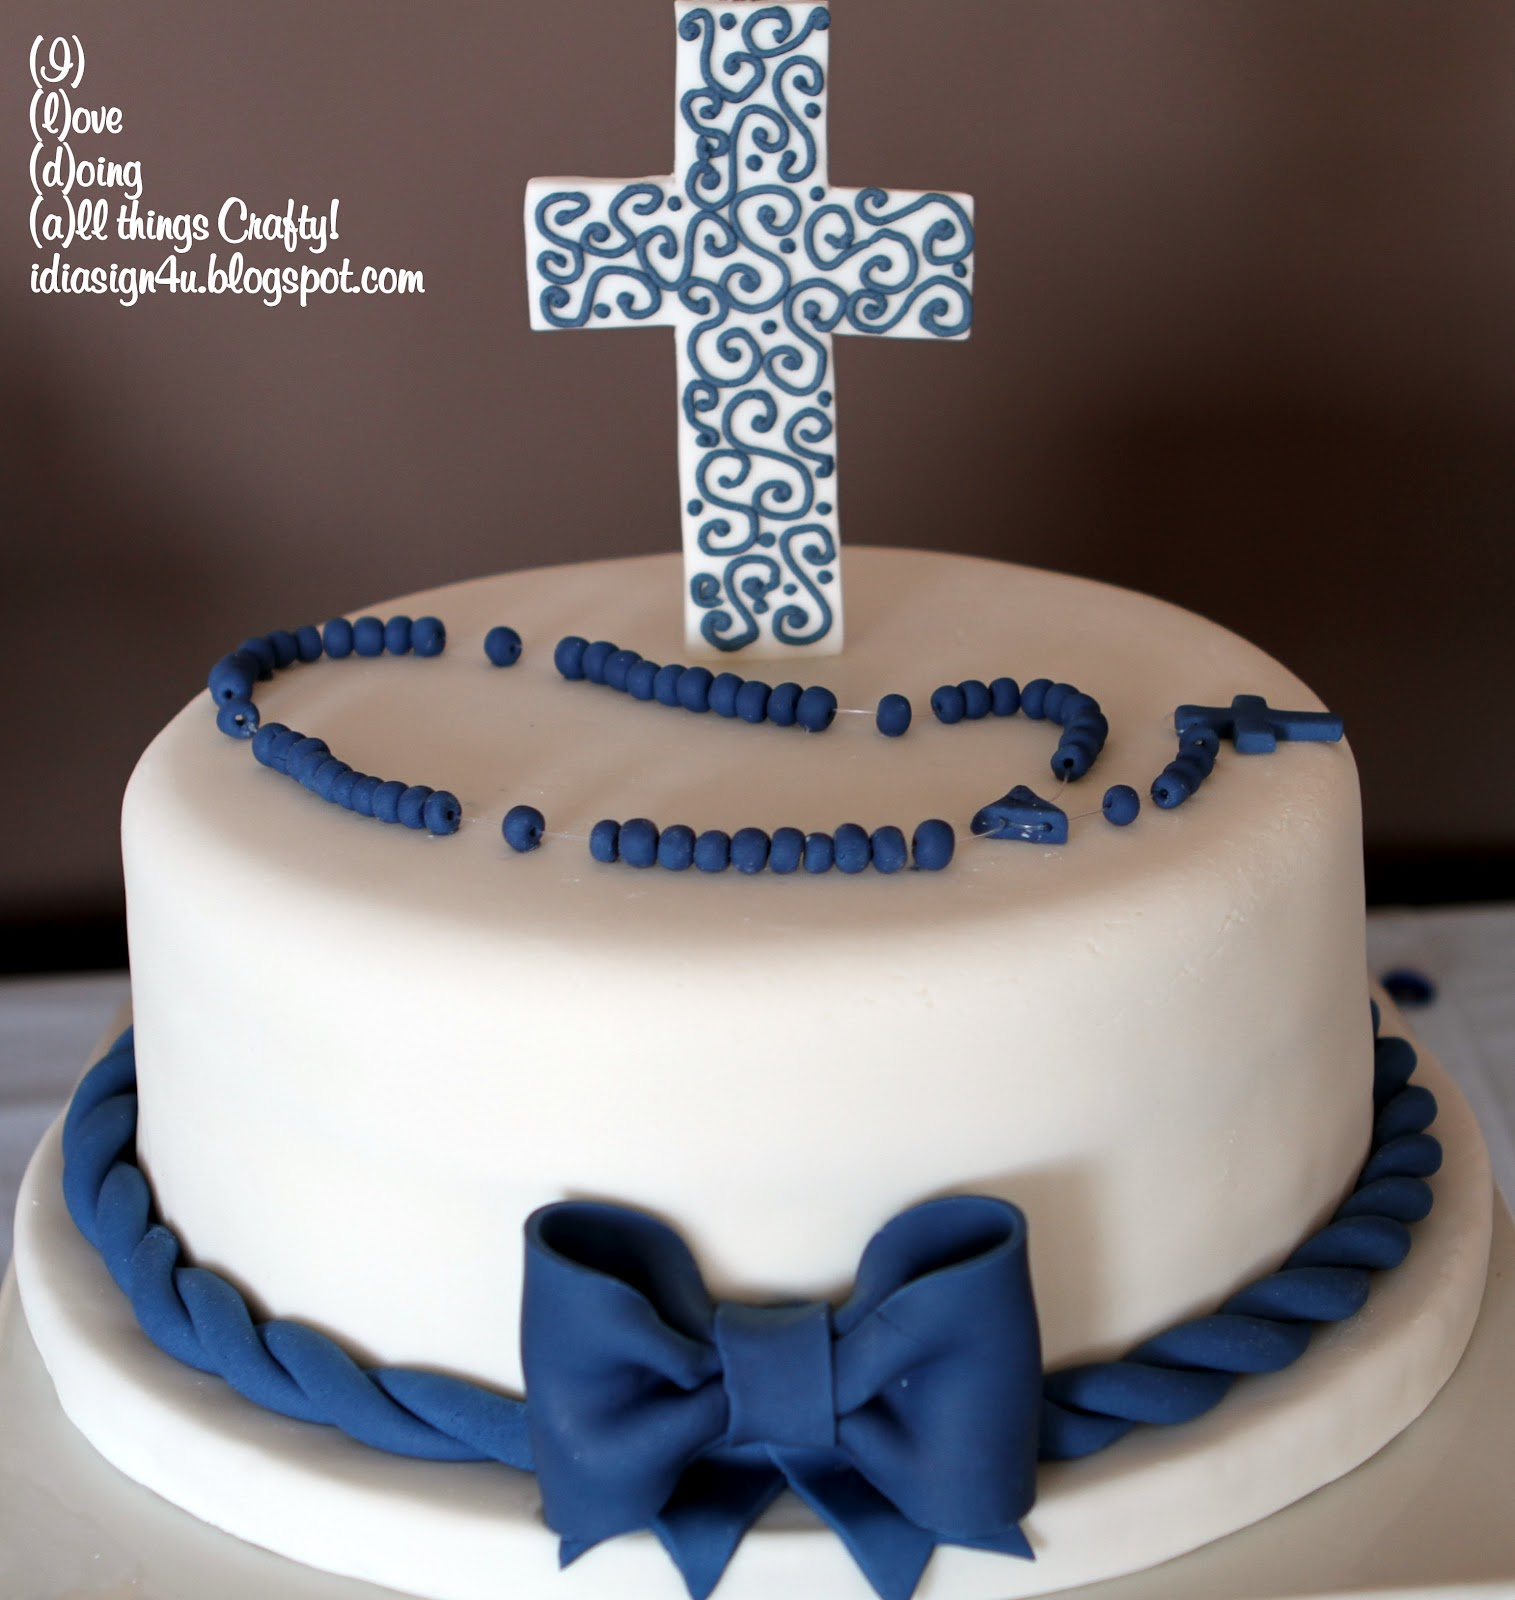 I Love Doing All Things Crafty Simple Communion Cake For